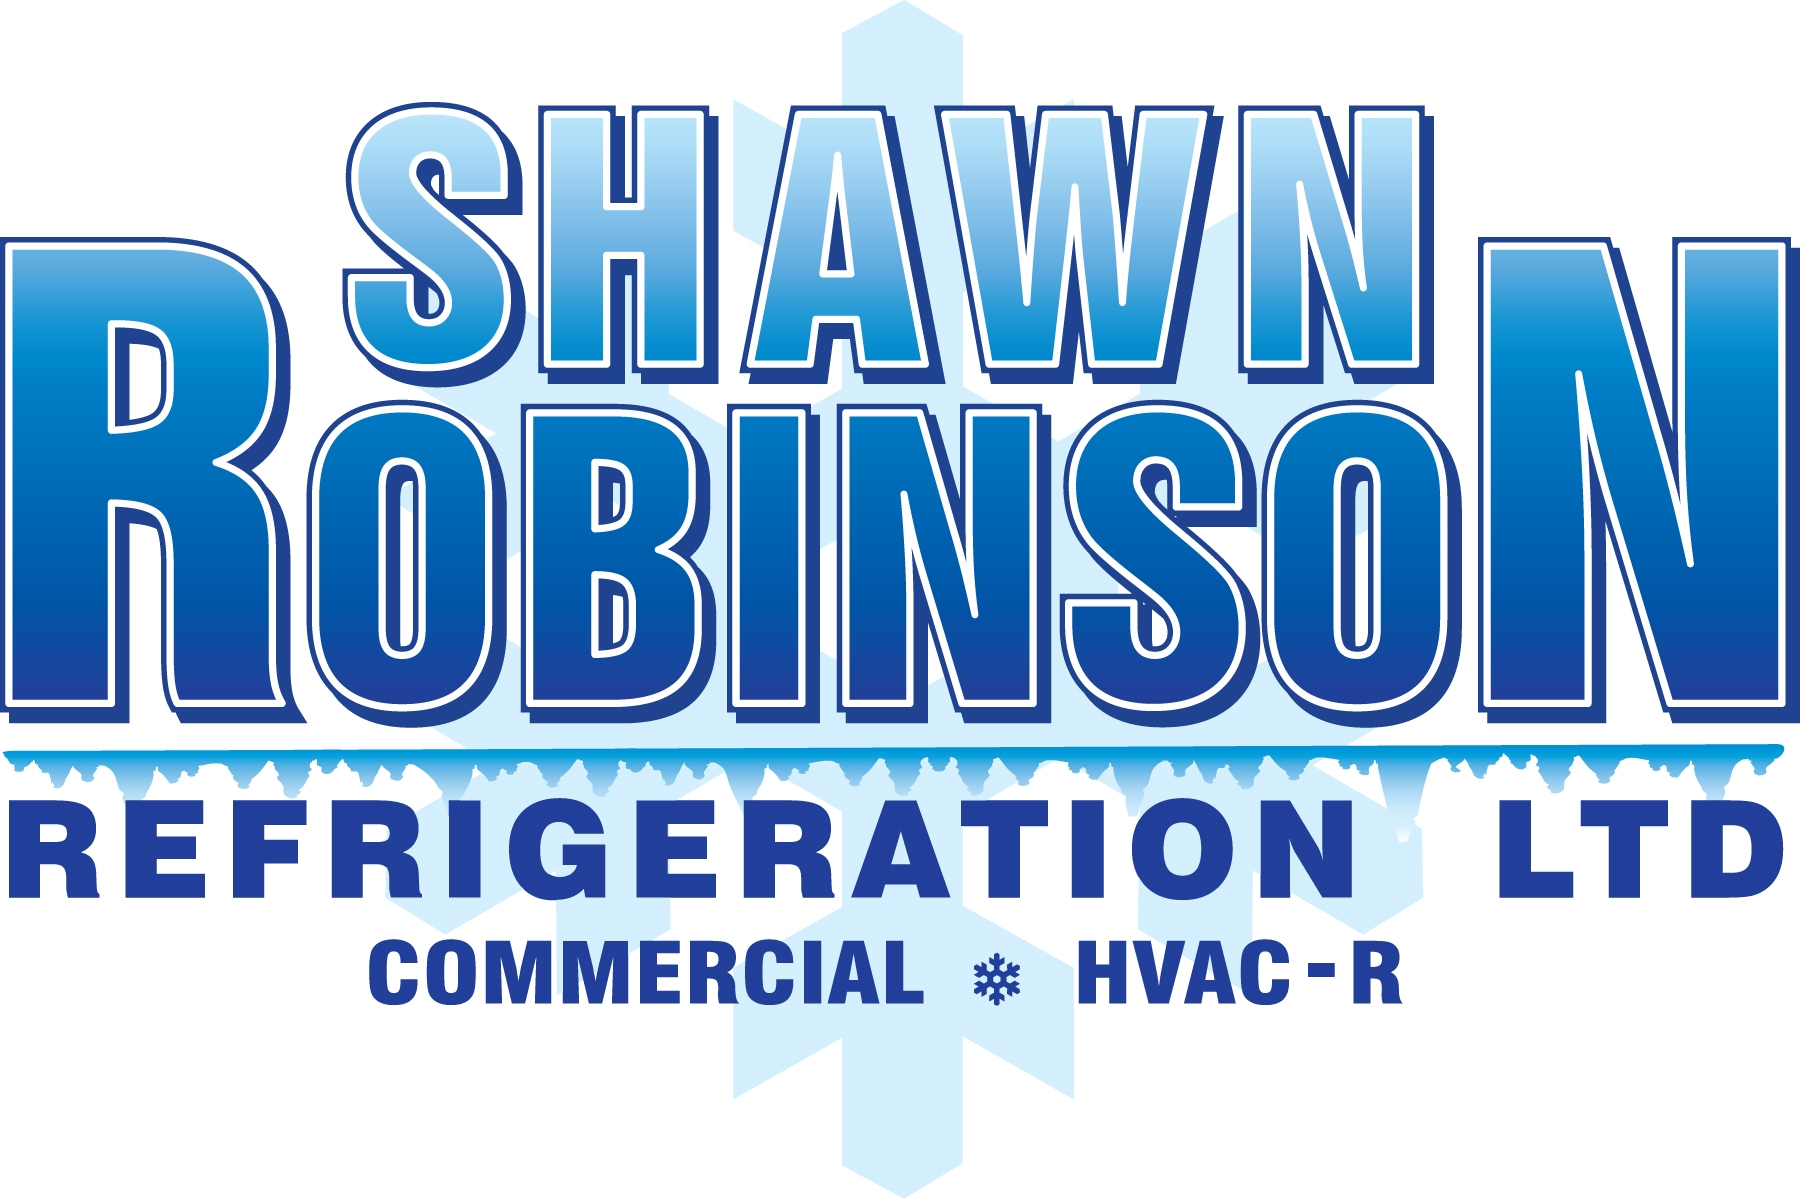 Shawn Robinson Refrigeration Ltd